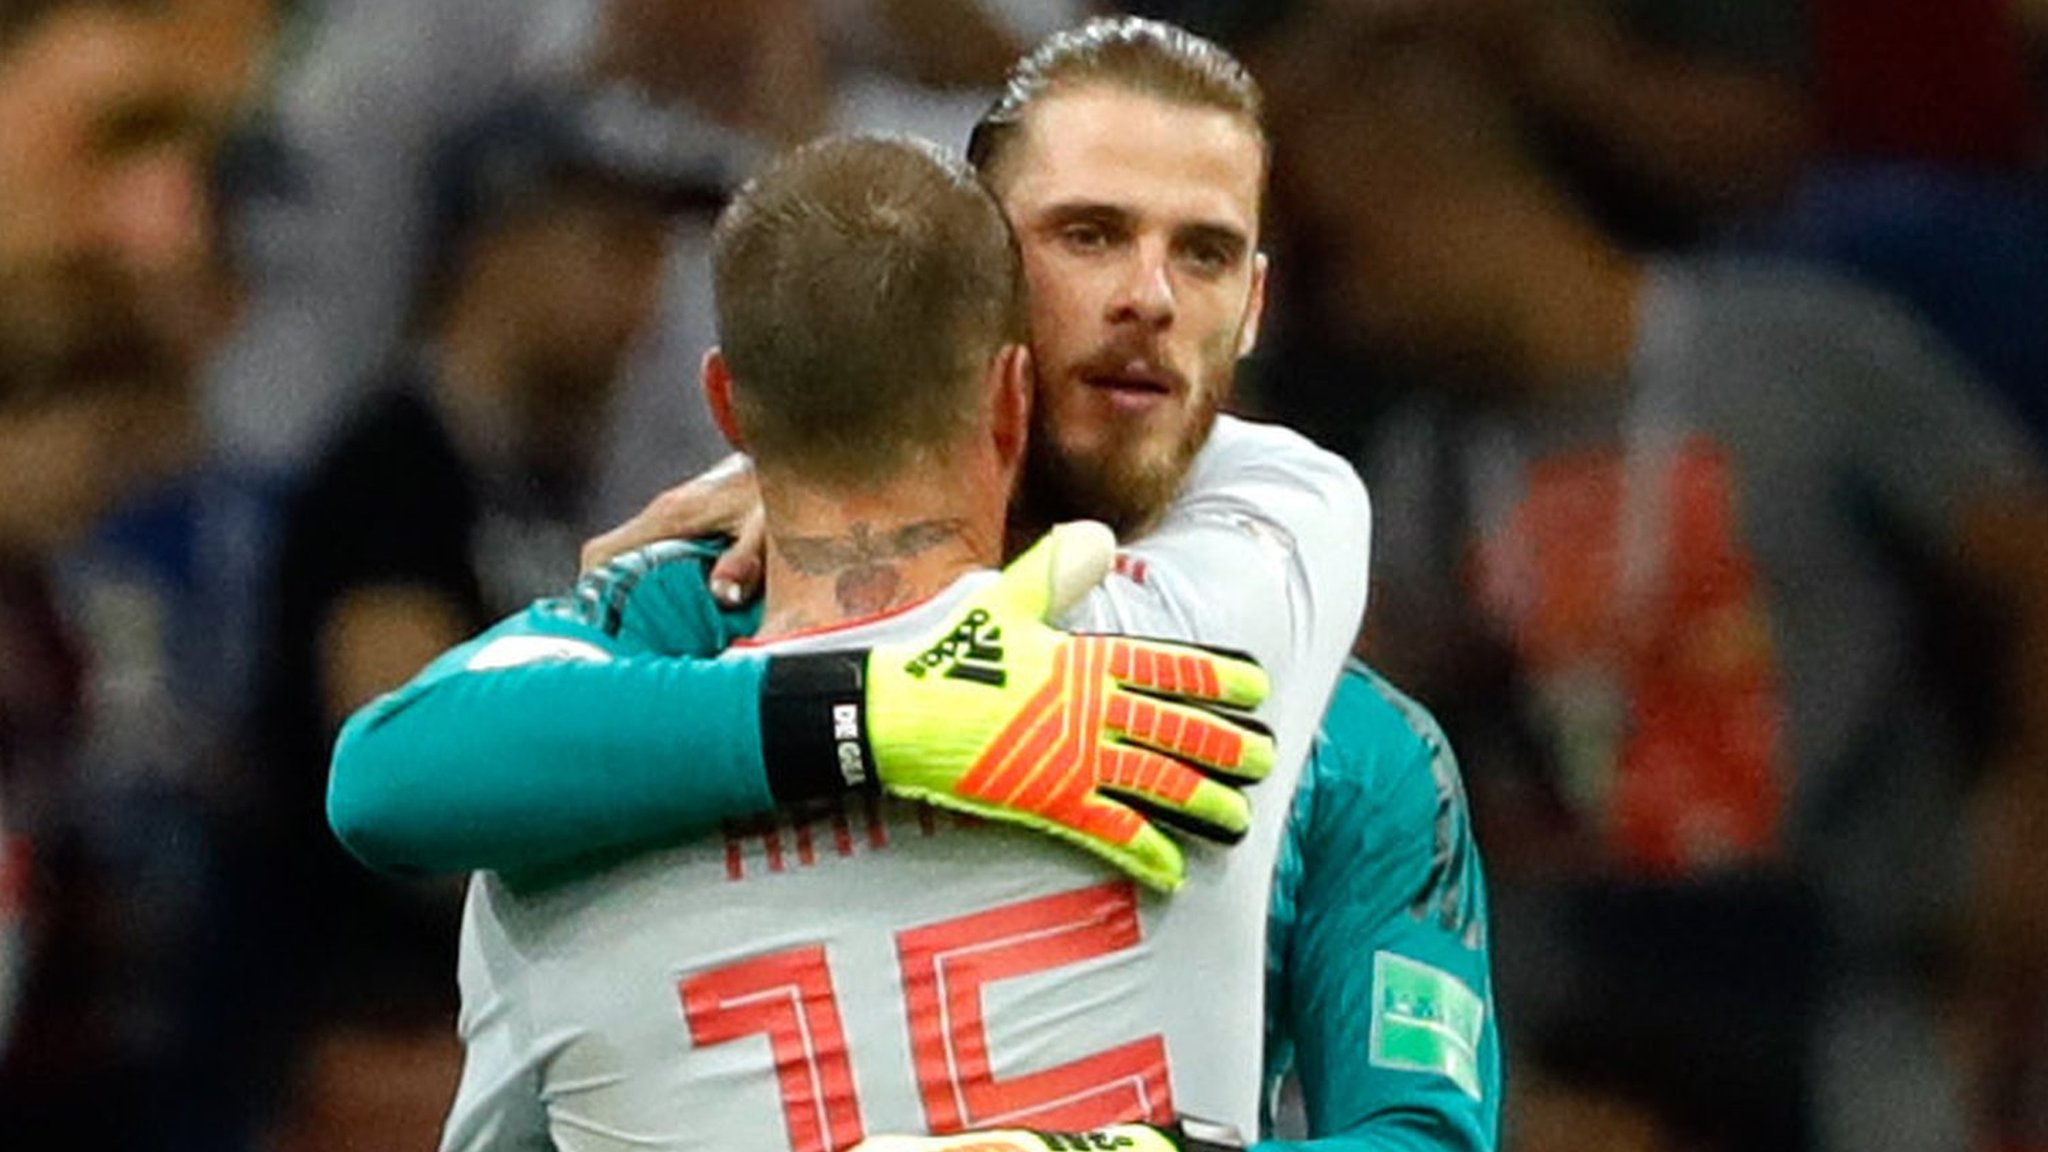 World Cup 2018: Spain players 'don't doubt' David de Gea, says Fernando Hierro